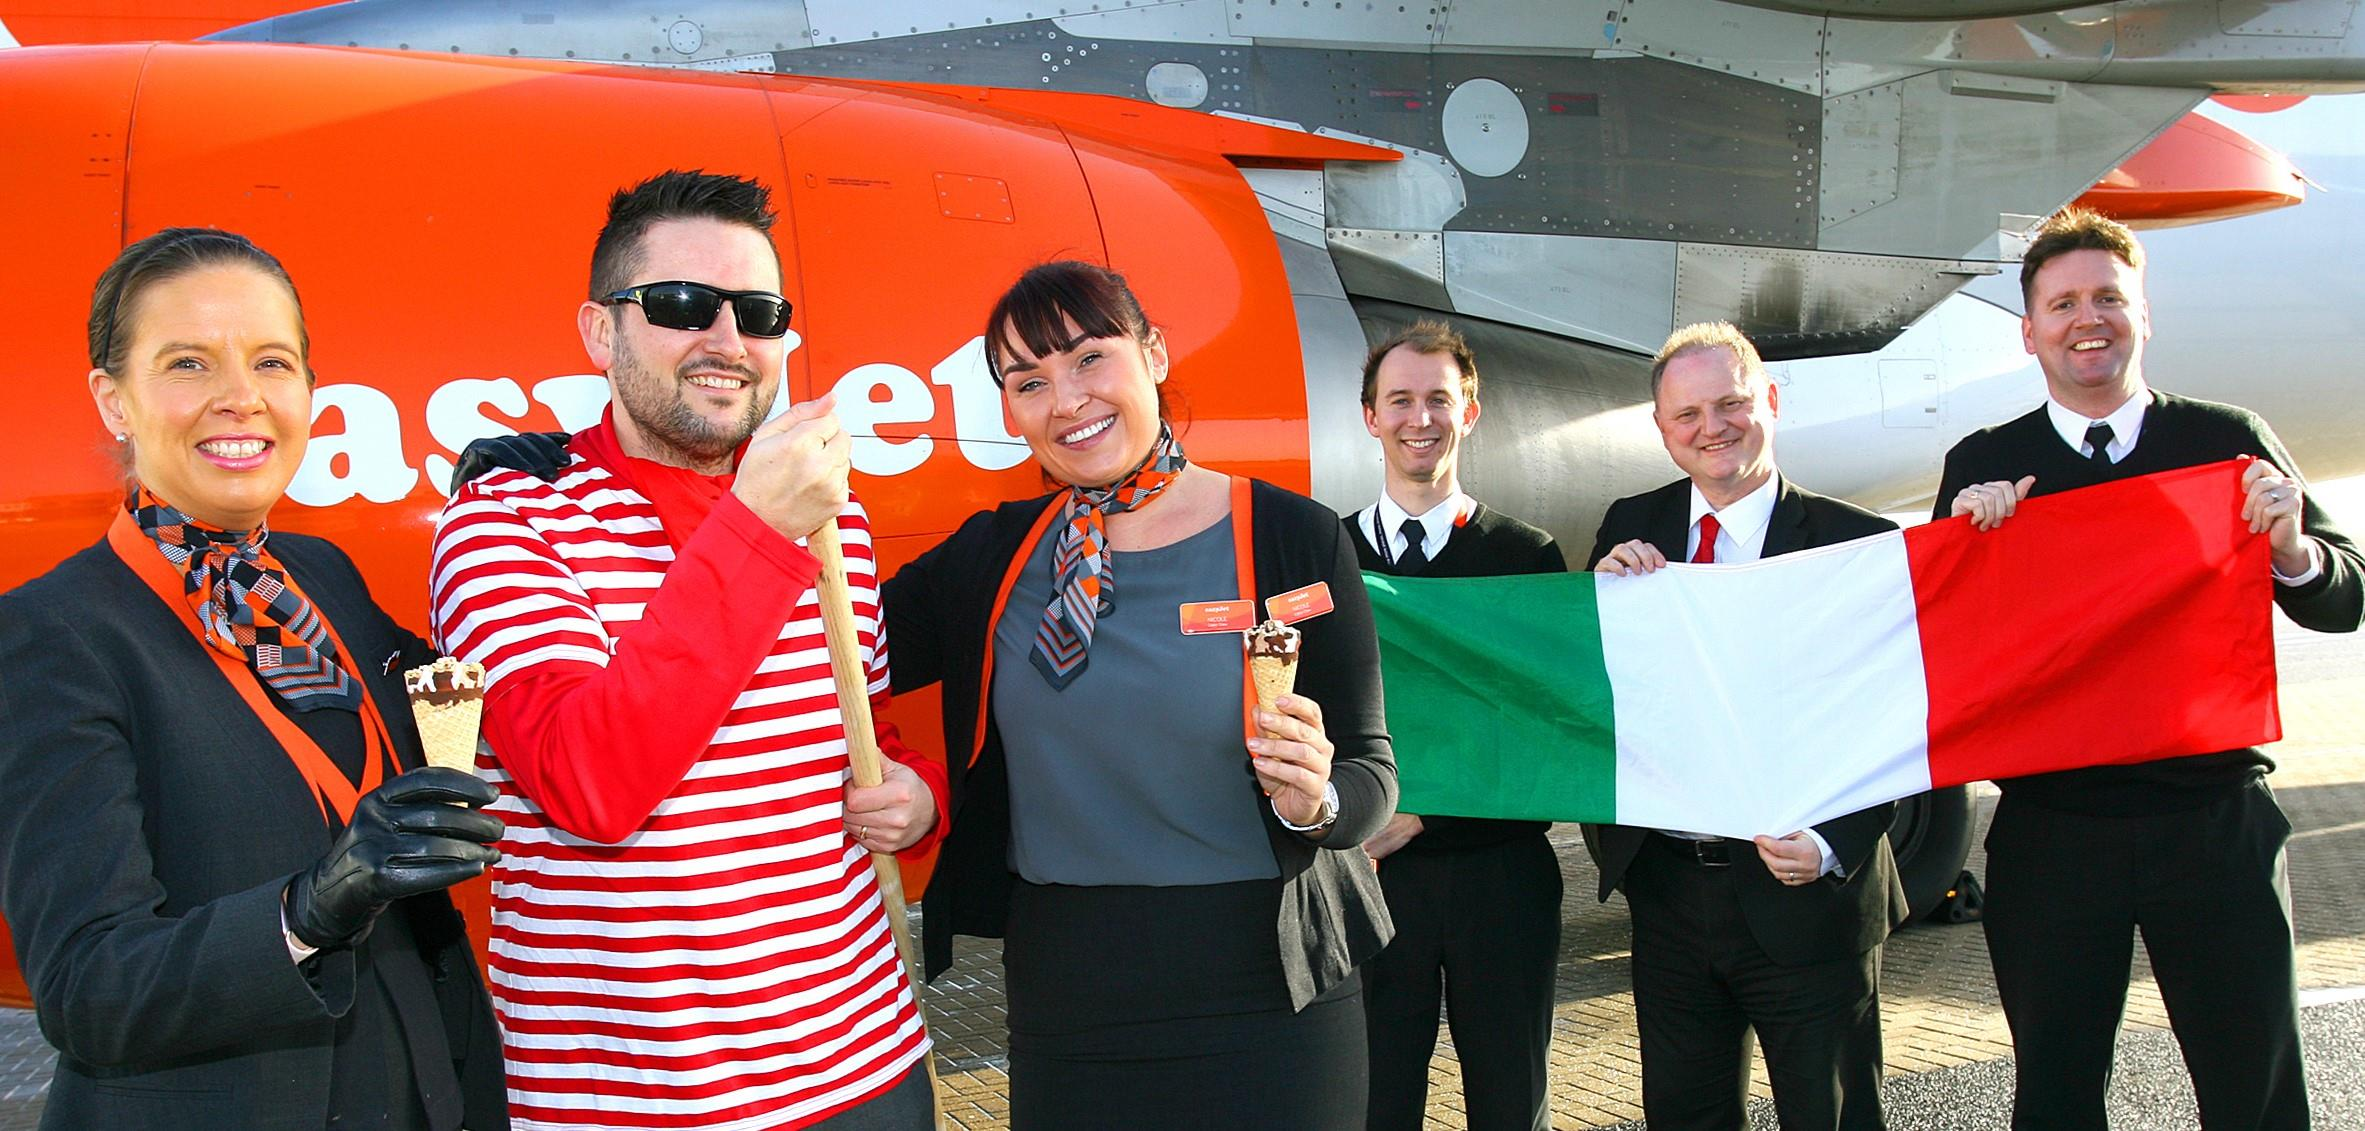 Bella Italia! New easyJet route To Venice